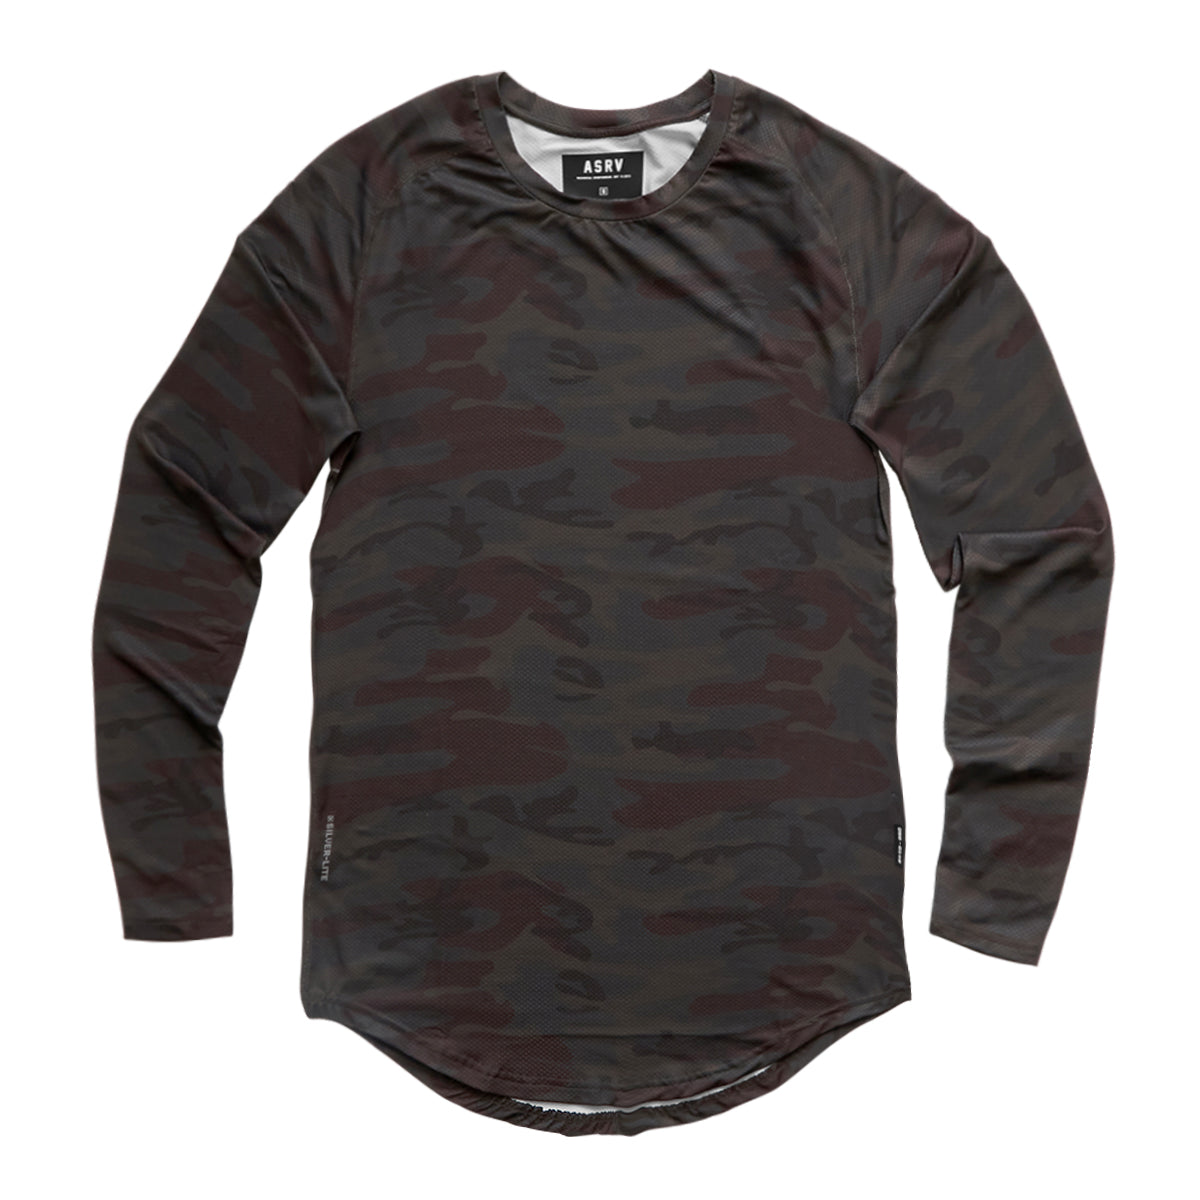 0149. Silver-Lite® Long Sleeve - Earth Camo